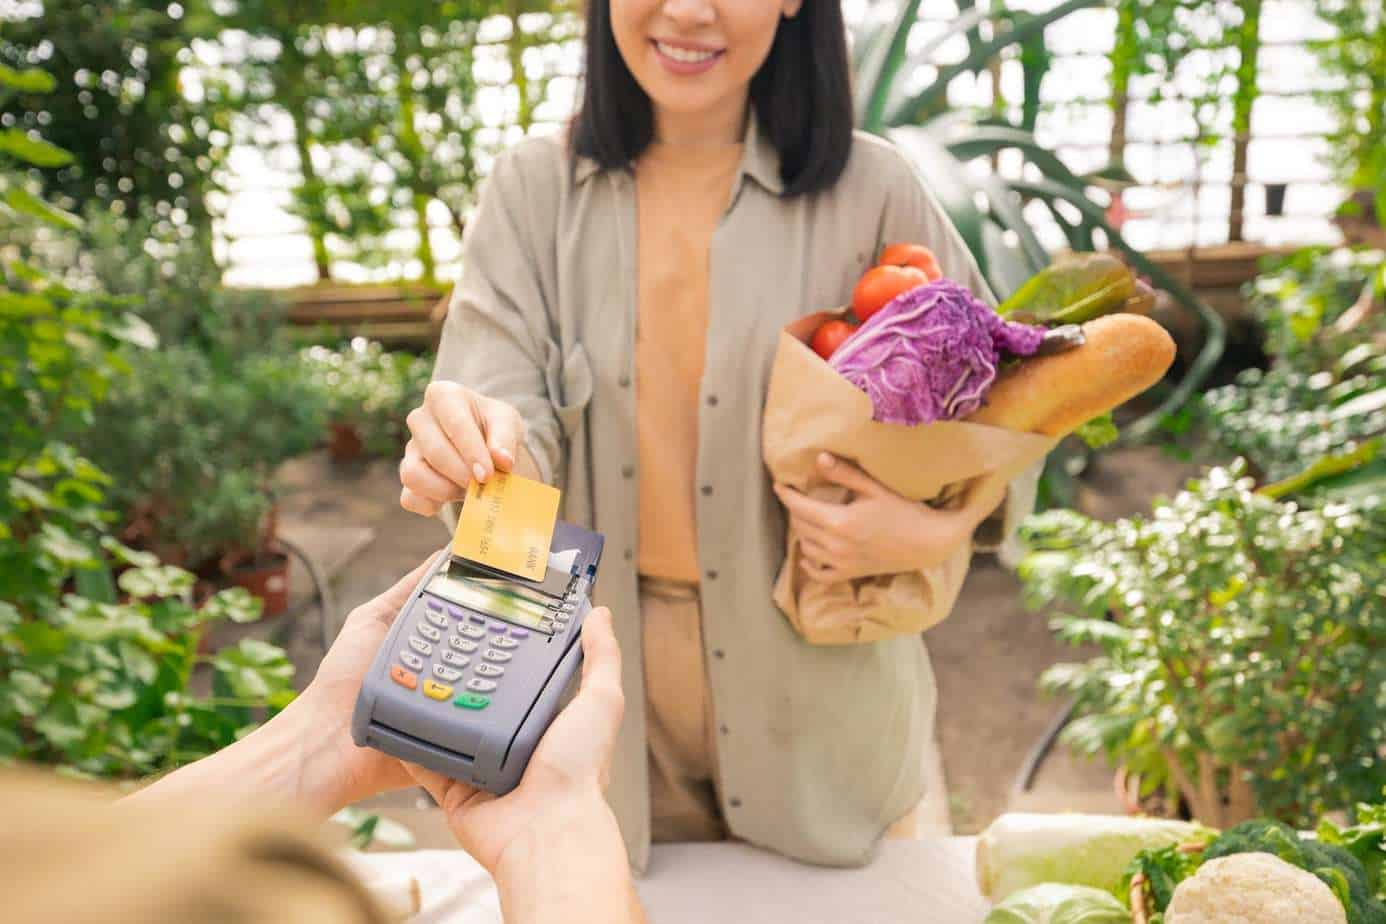 paying-for-organic-food-with-credit-card-EEMXDU5